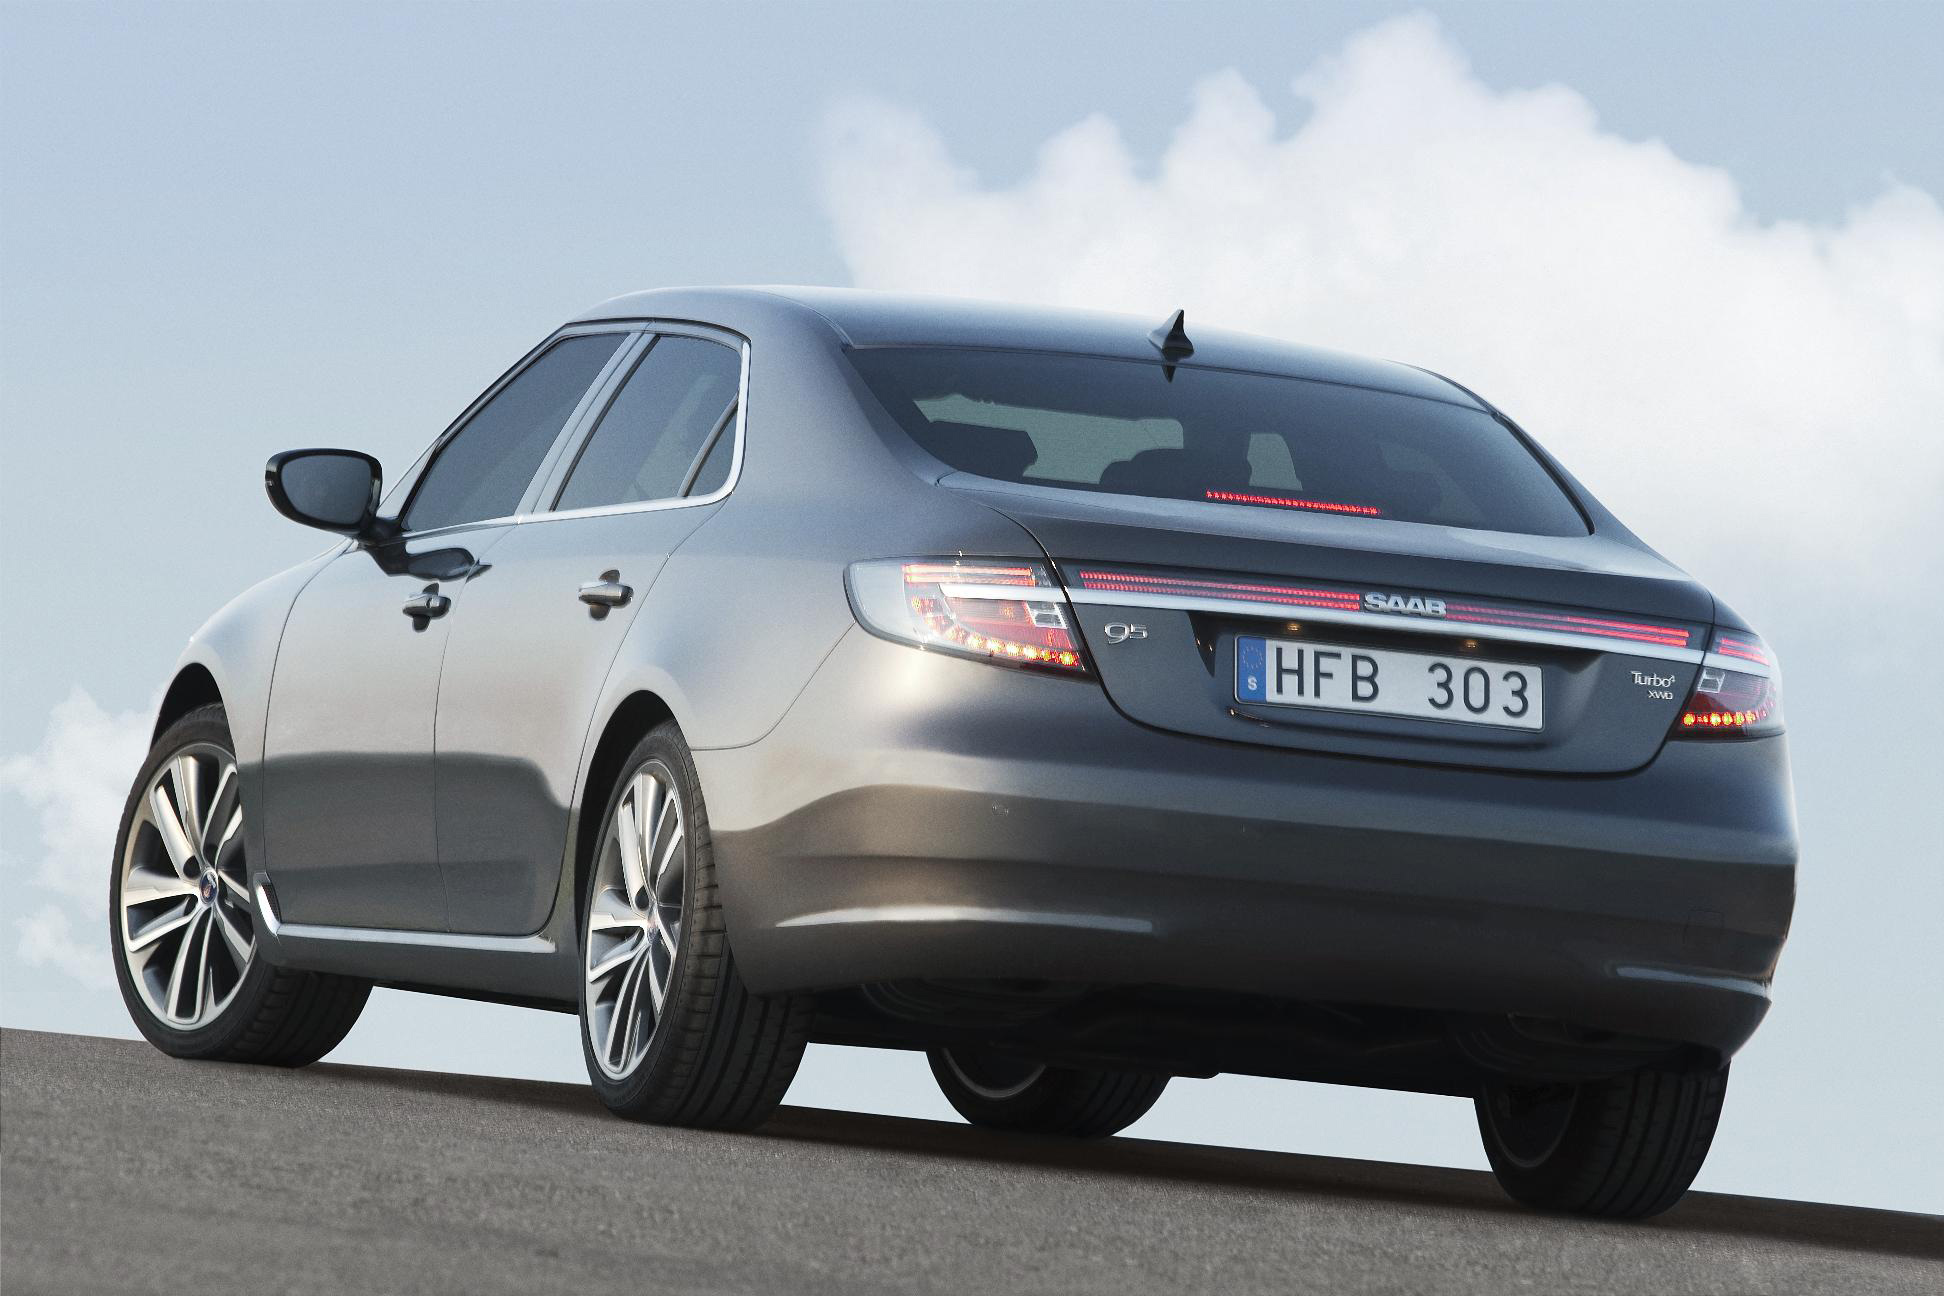 Saab enthusiasts will enjoy the chunk of the new 95's design